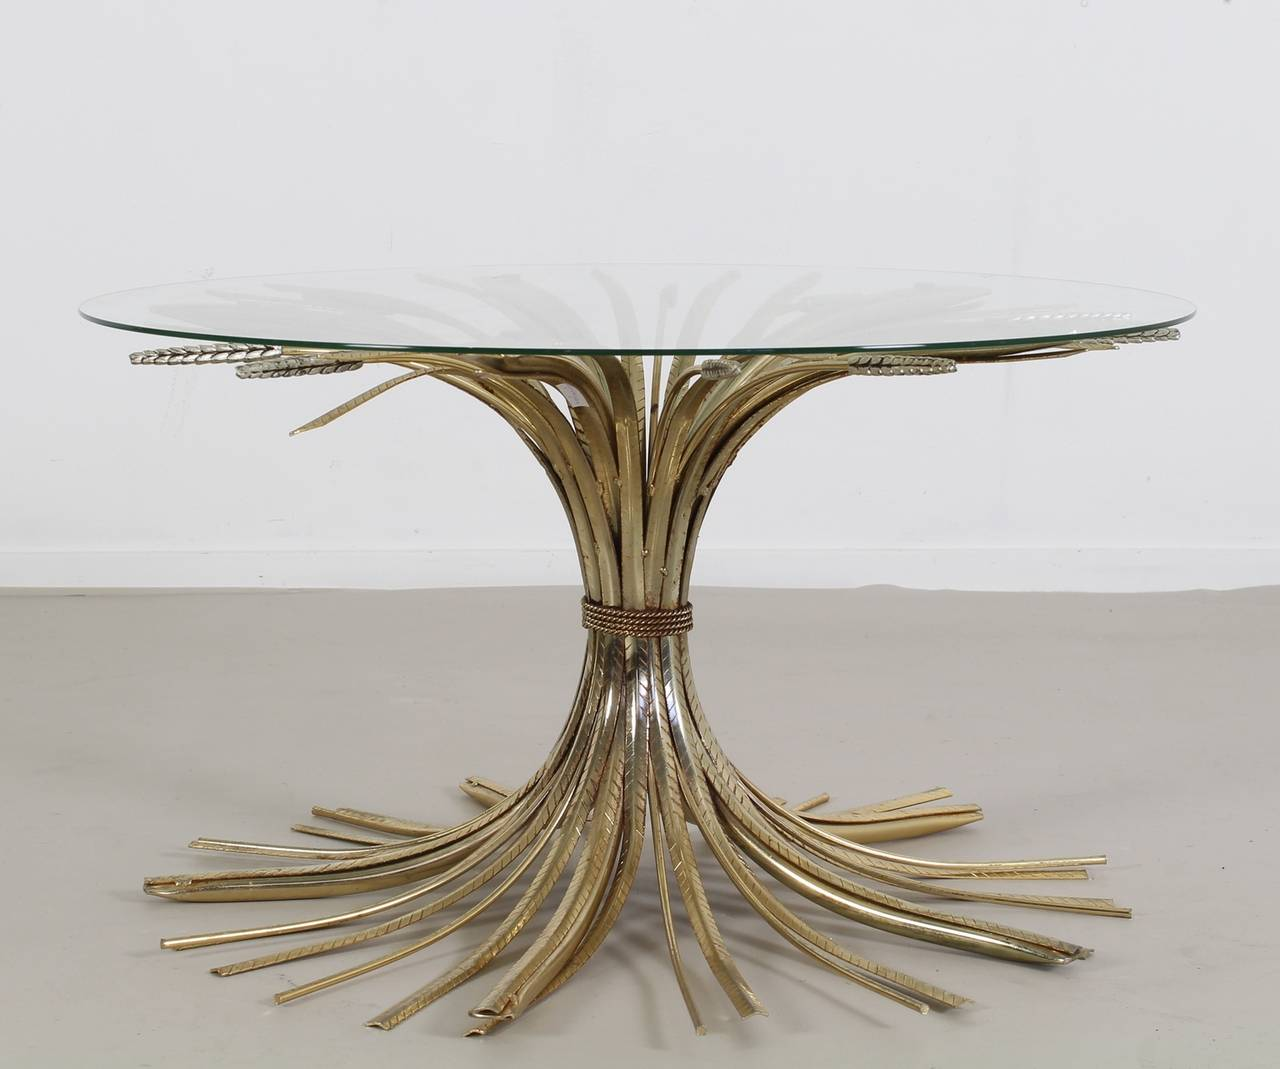 Wheat Sheaf Gilt Metal Table With Glass Top At 1stdibs